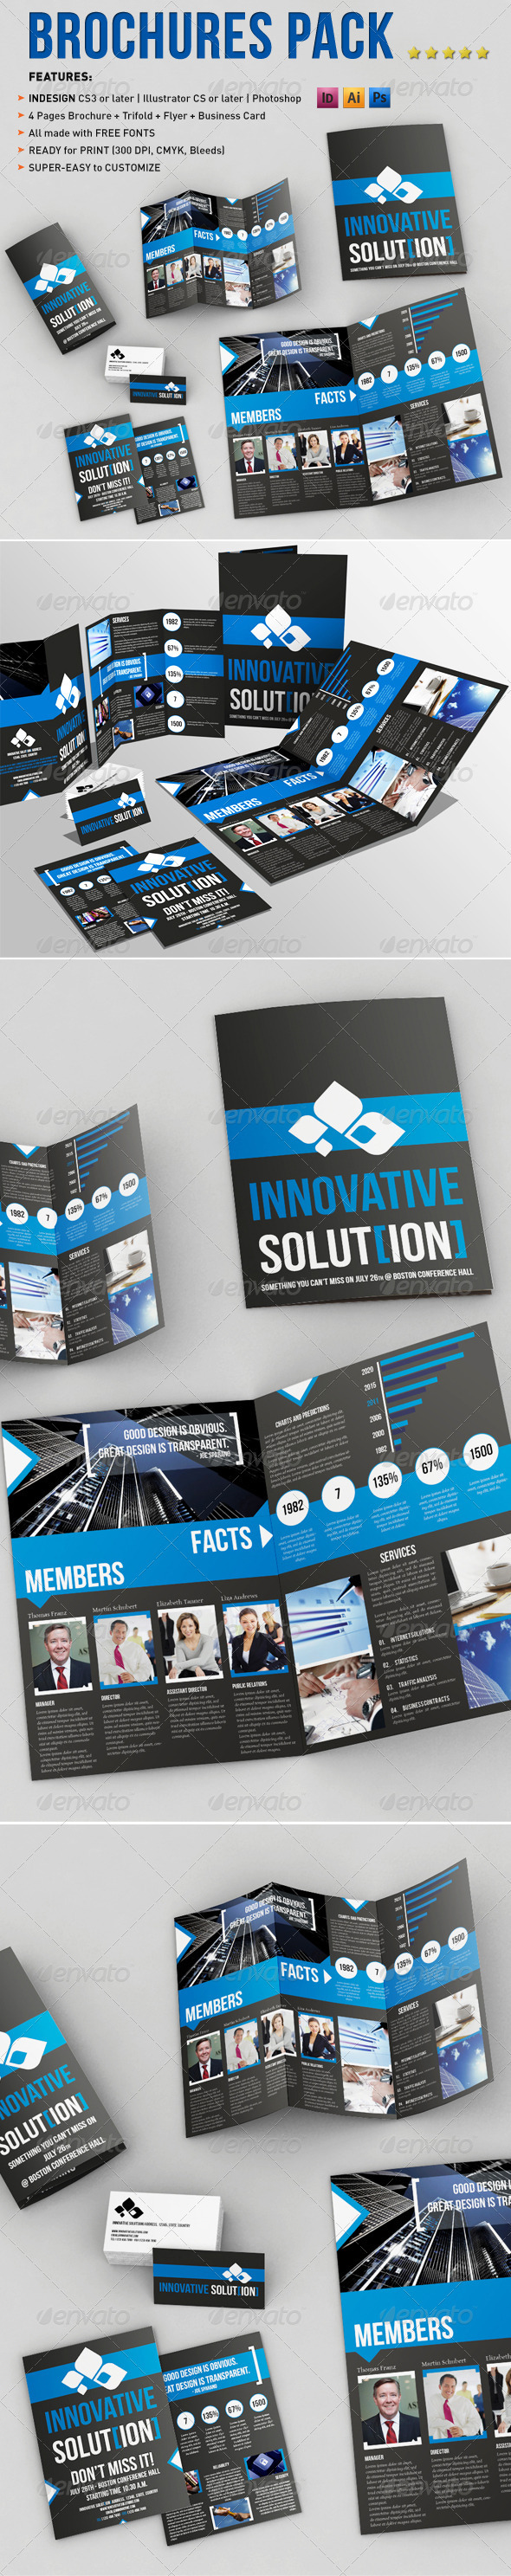 Brochure Pack A4+Trifold Leaflet+Business Card - Corporate Brochures